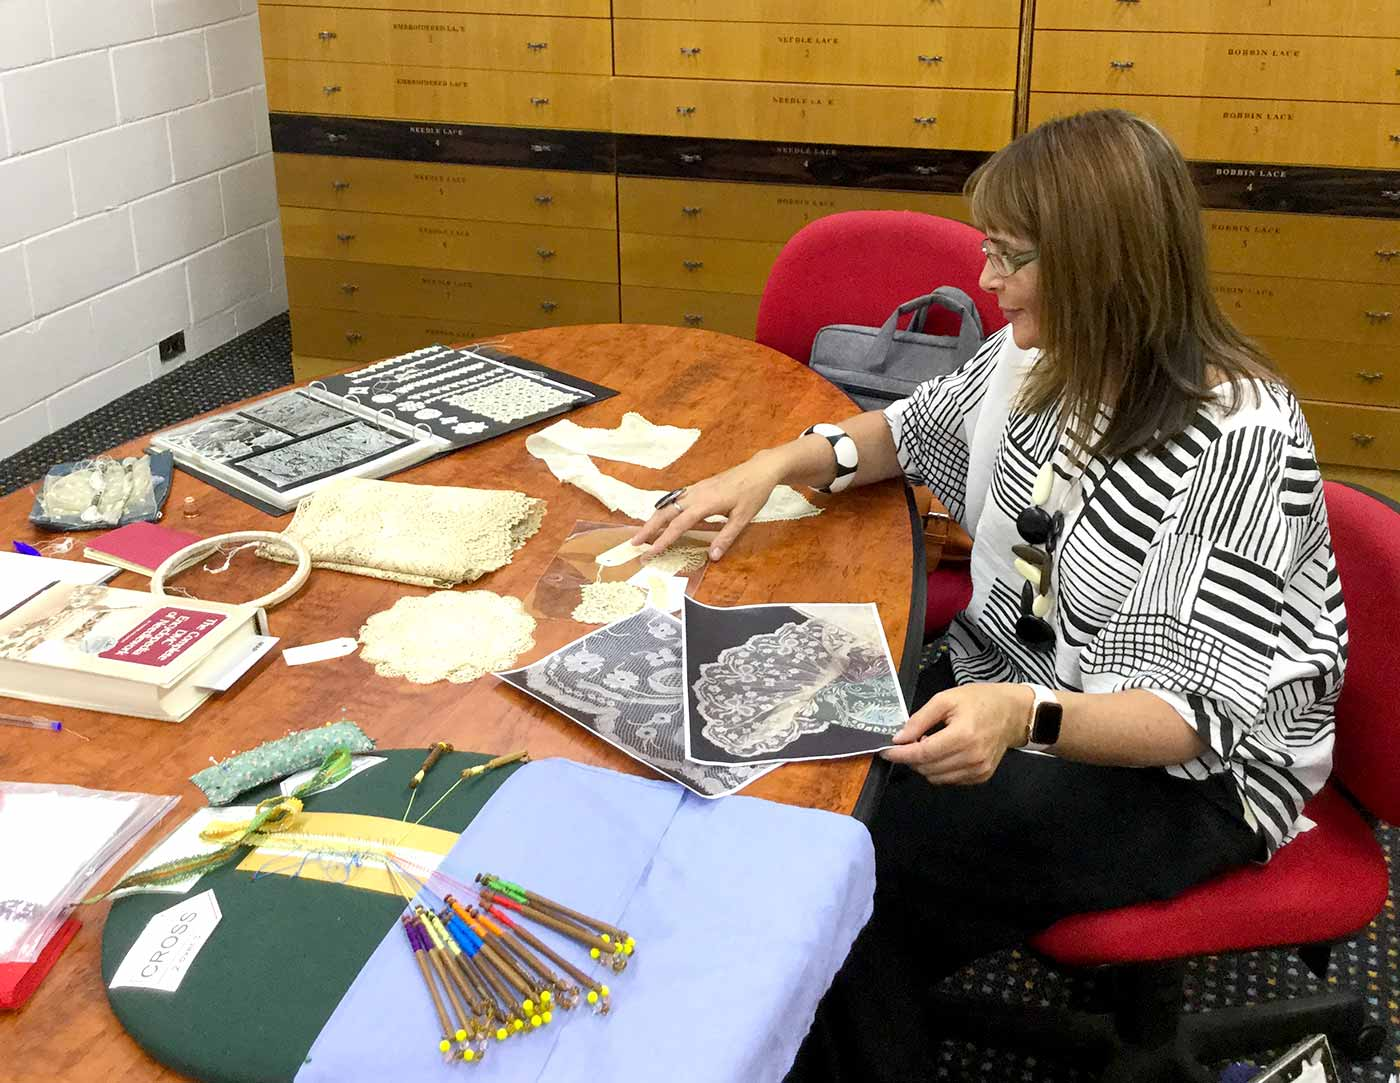 A woman is sittings at table with various items related to textiles including samples and photocopies of lace.